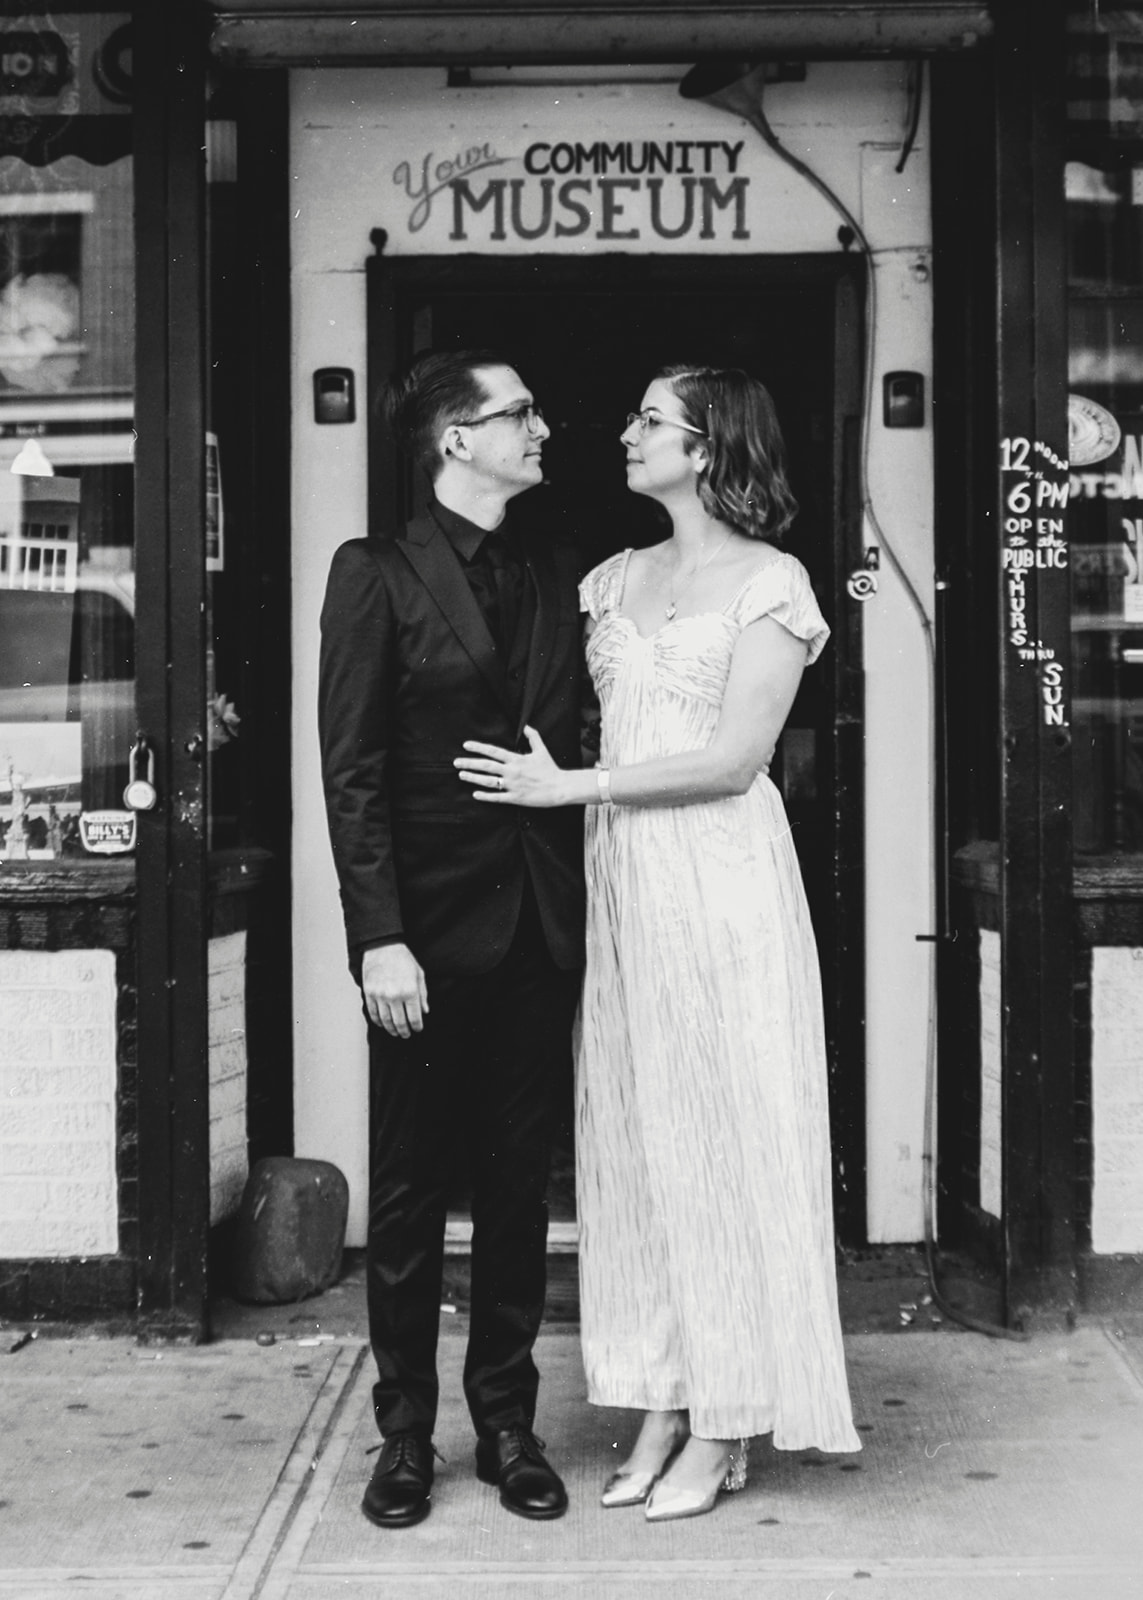 Newlywed couples looking at each other for portrait in front of community museum by Austin Texas LGBTQ friendly photographer Ziggy Shoots